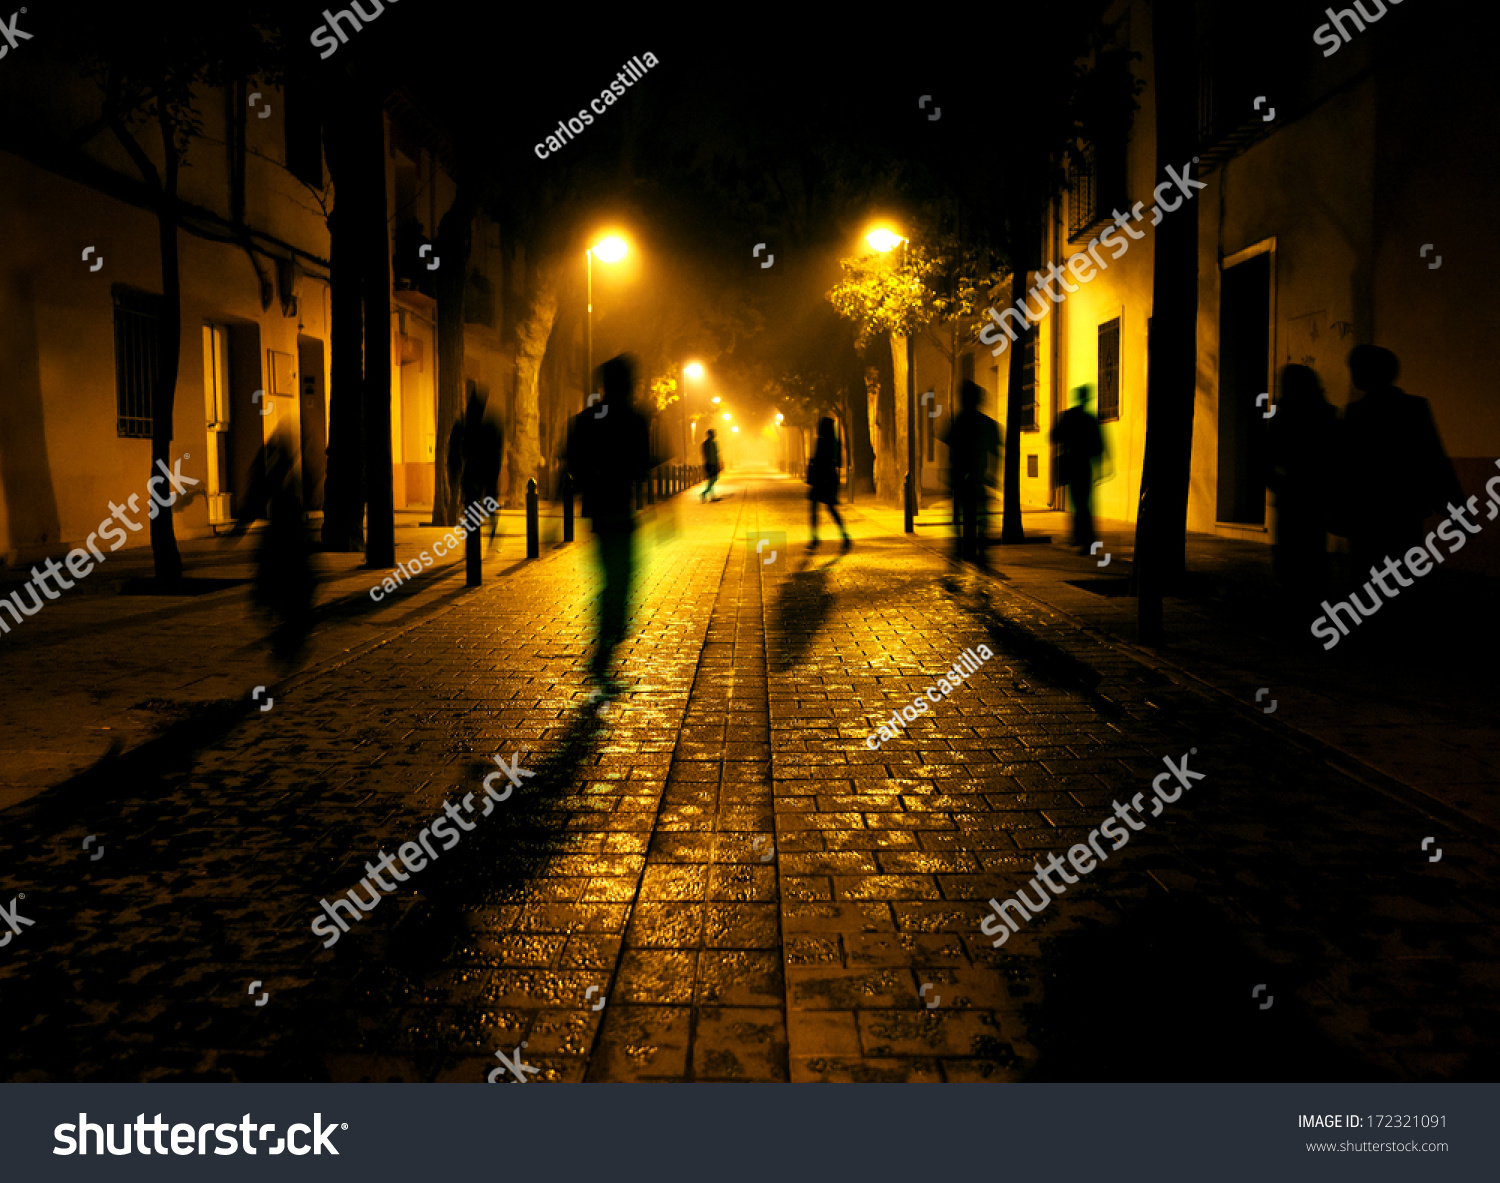 City At Night. Shadows Of People Walking Down The Street ...